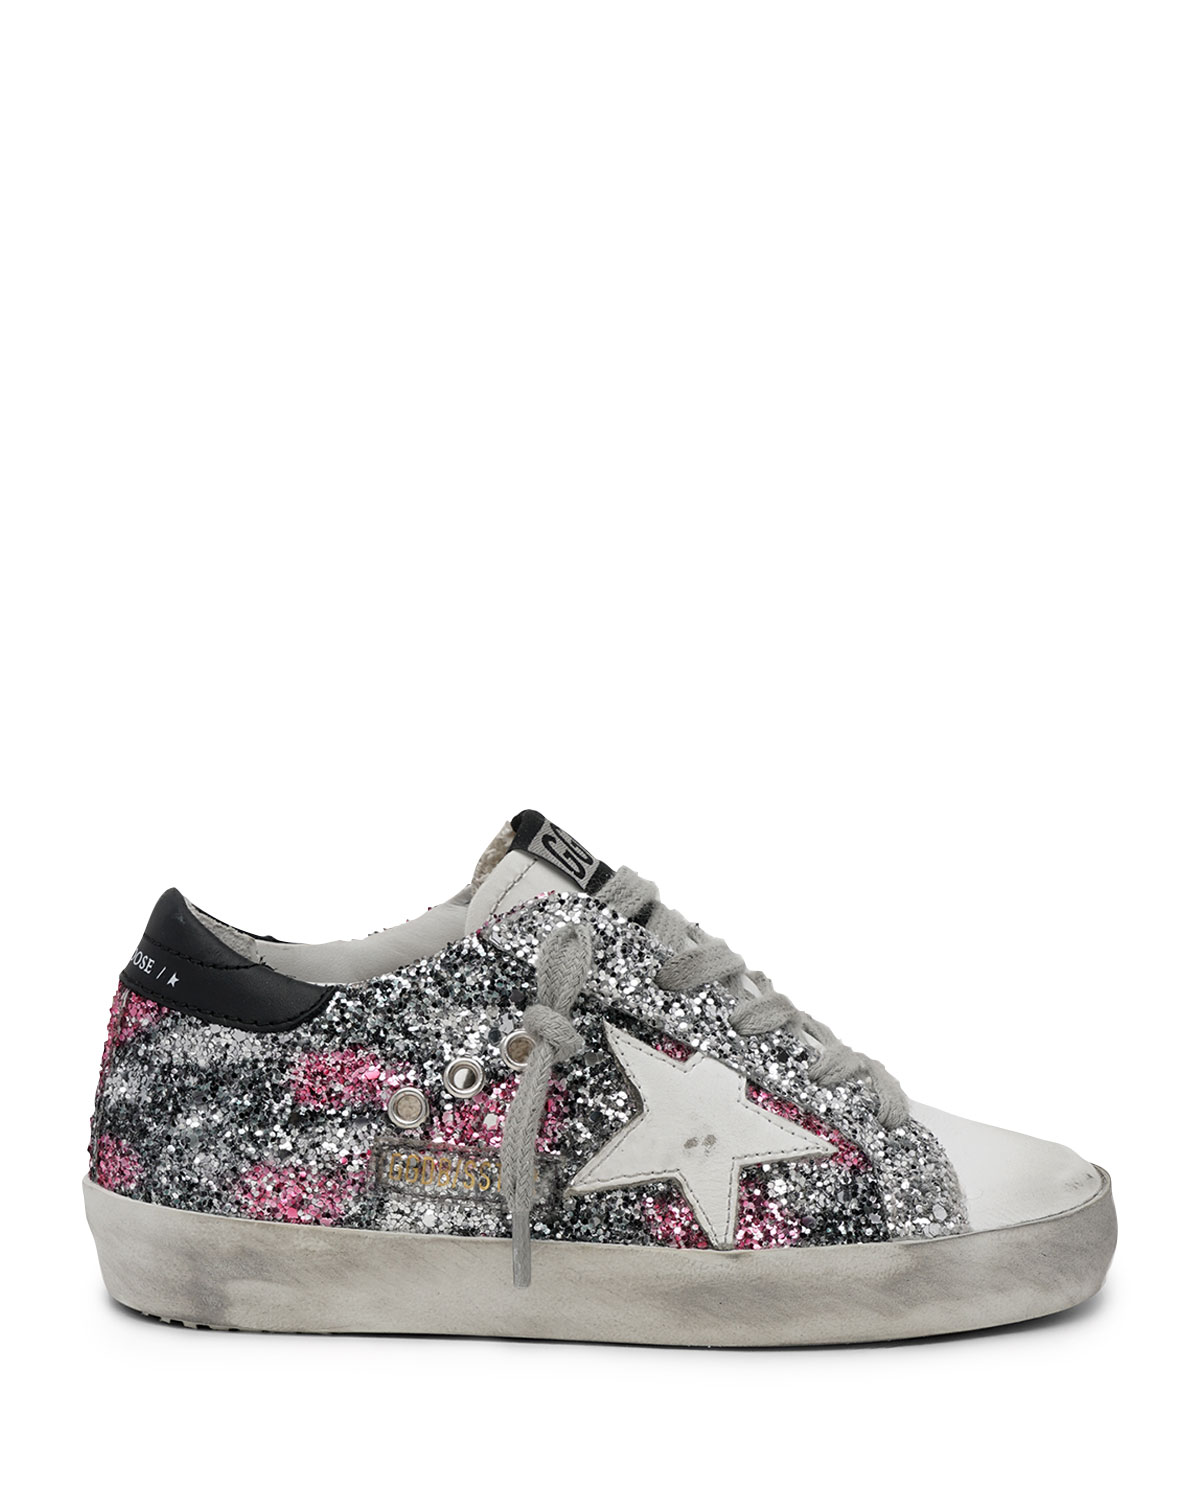 Golden Goose GIRL'S SUPERSTAR GLITTER & LEATHER LOW-TOP SNEAKERS, TODDLERS